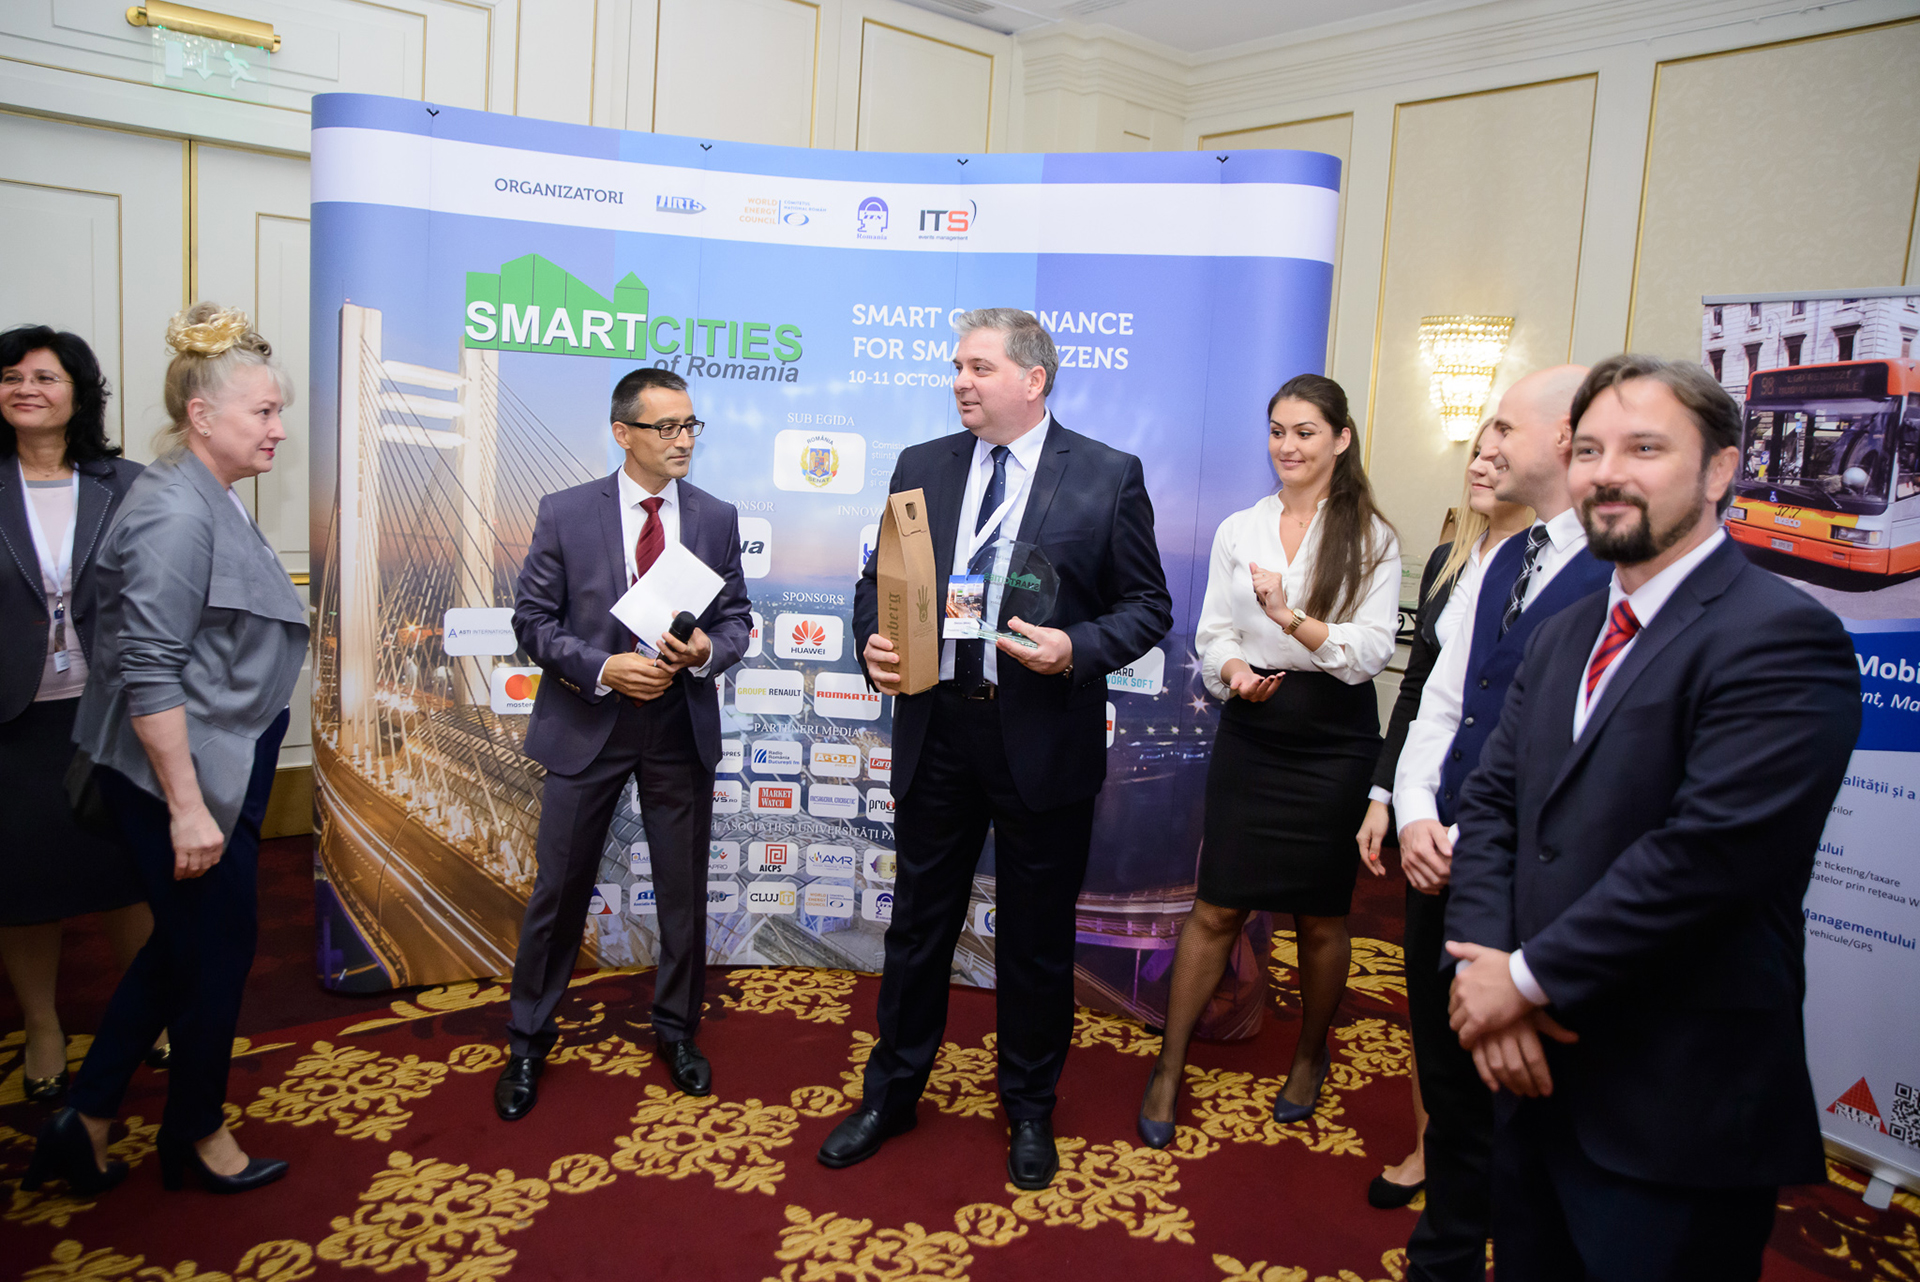 Smart-Cities-Of-Romania-2017---ITS-732